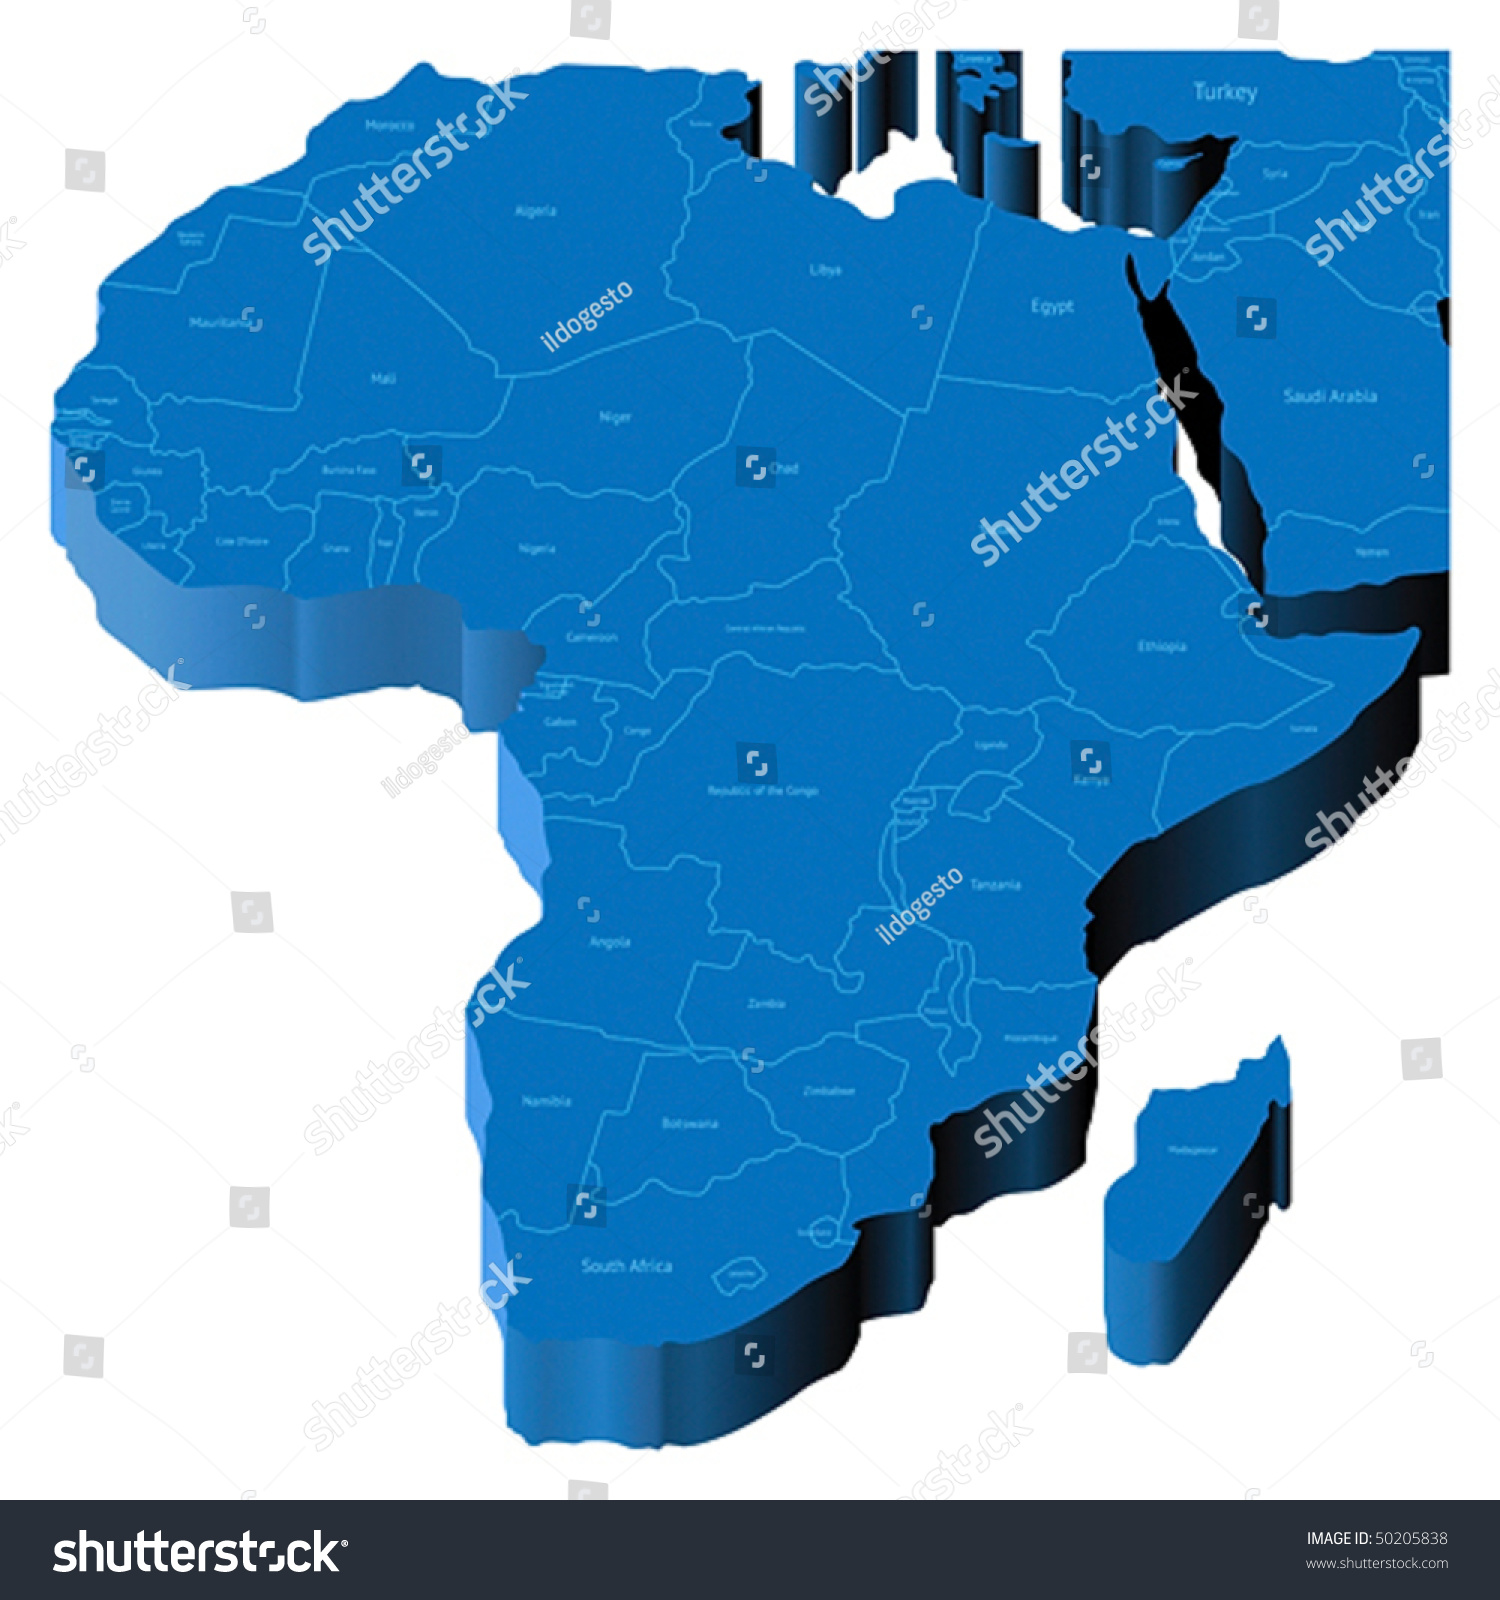 Map africa national borders country names vectores en stock 50205838 map of africa with national borders and country names pseudo 3d vector illustration gumiabroncs Image collections